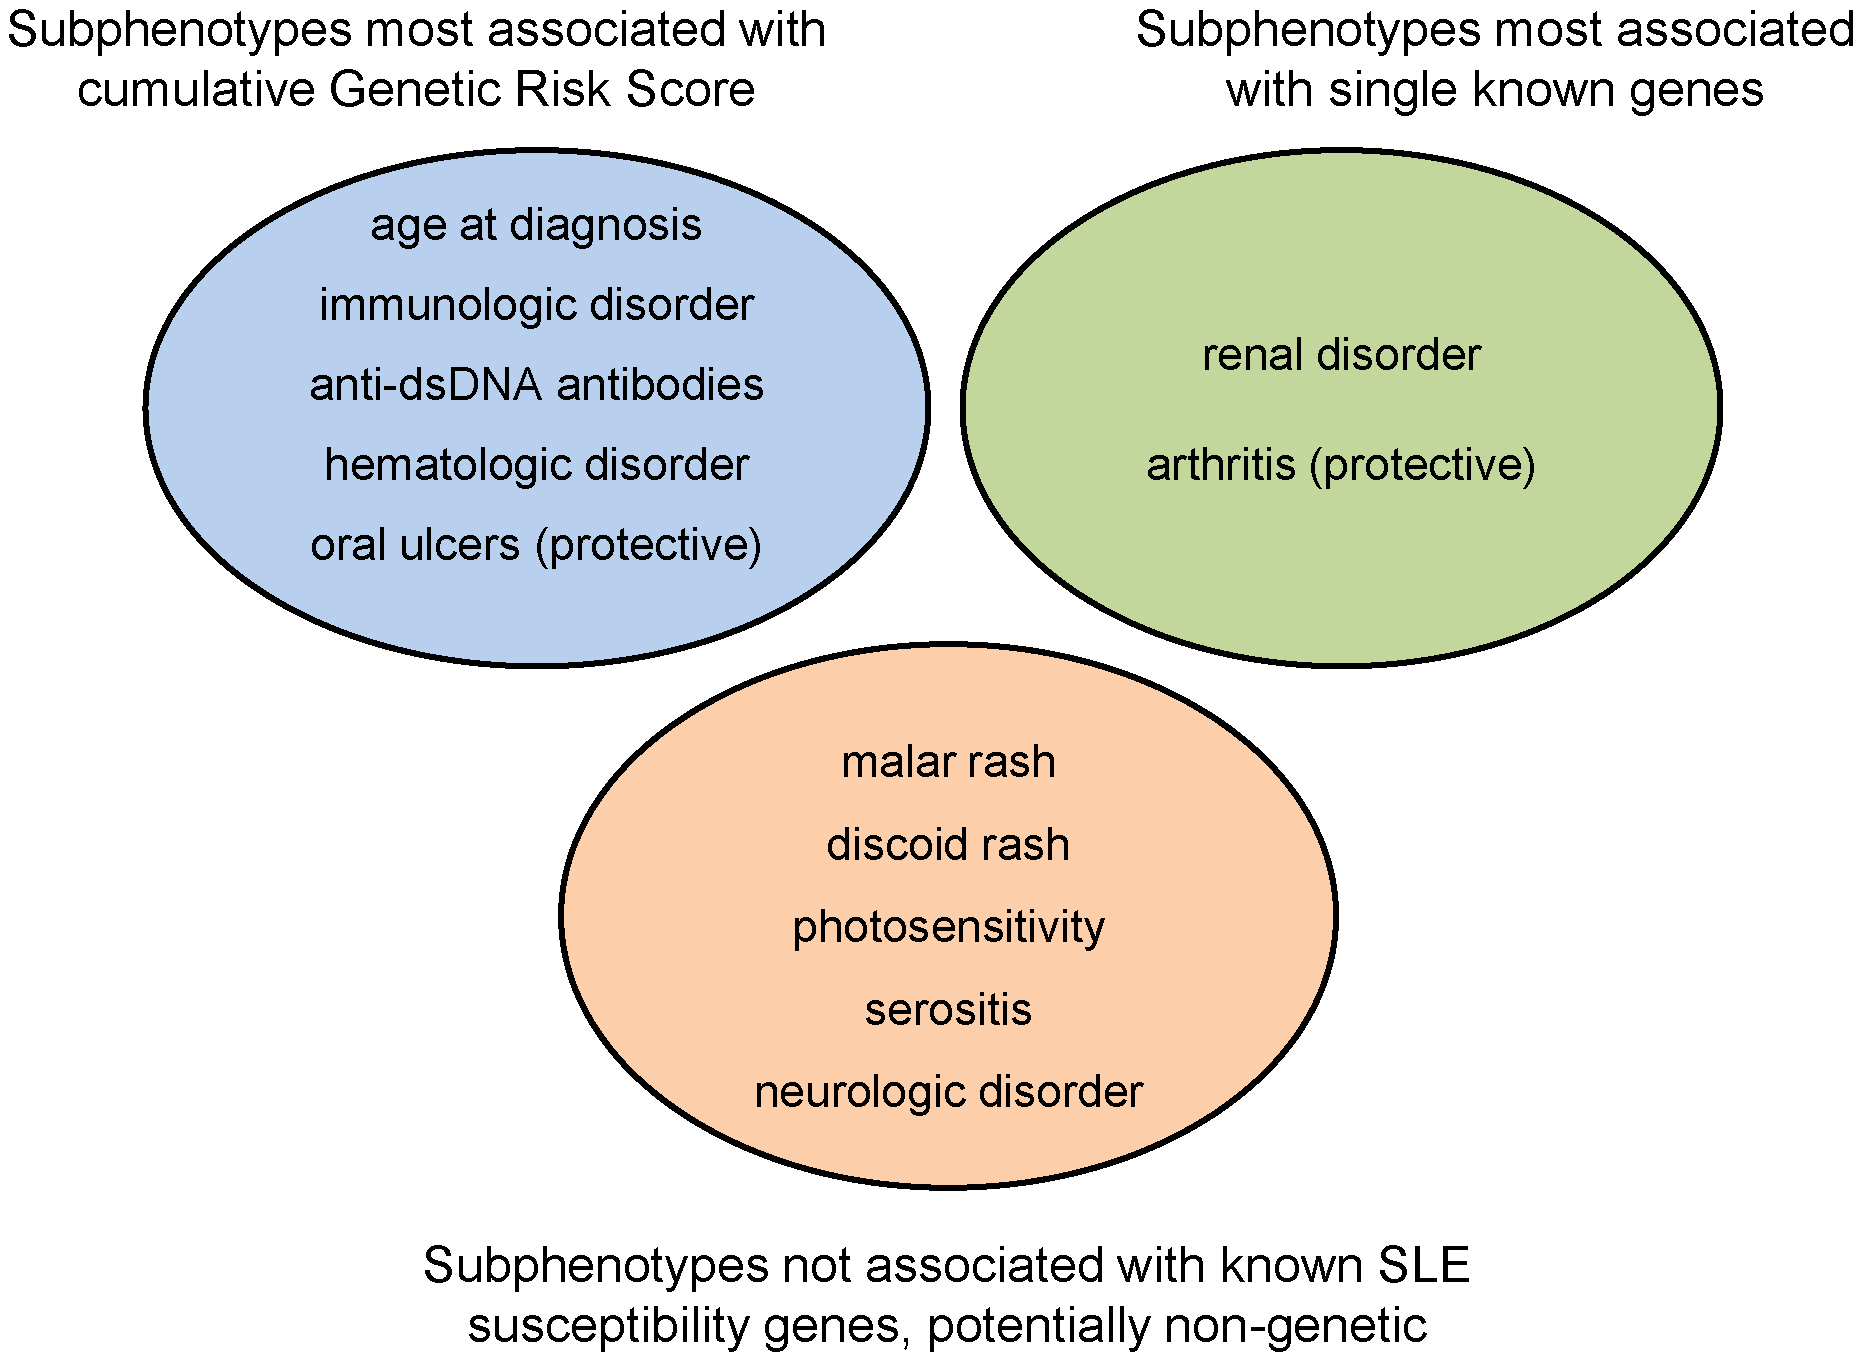 Categorization of SLE subphenotypes by strongest association with currently known susceptibility loci: genetic risk score, single locus, or none.